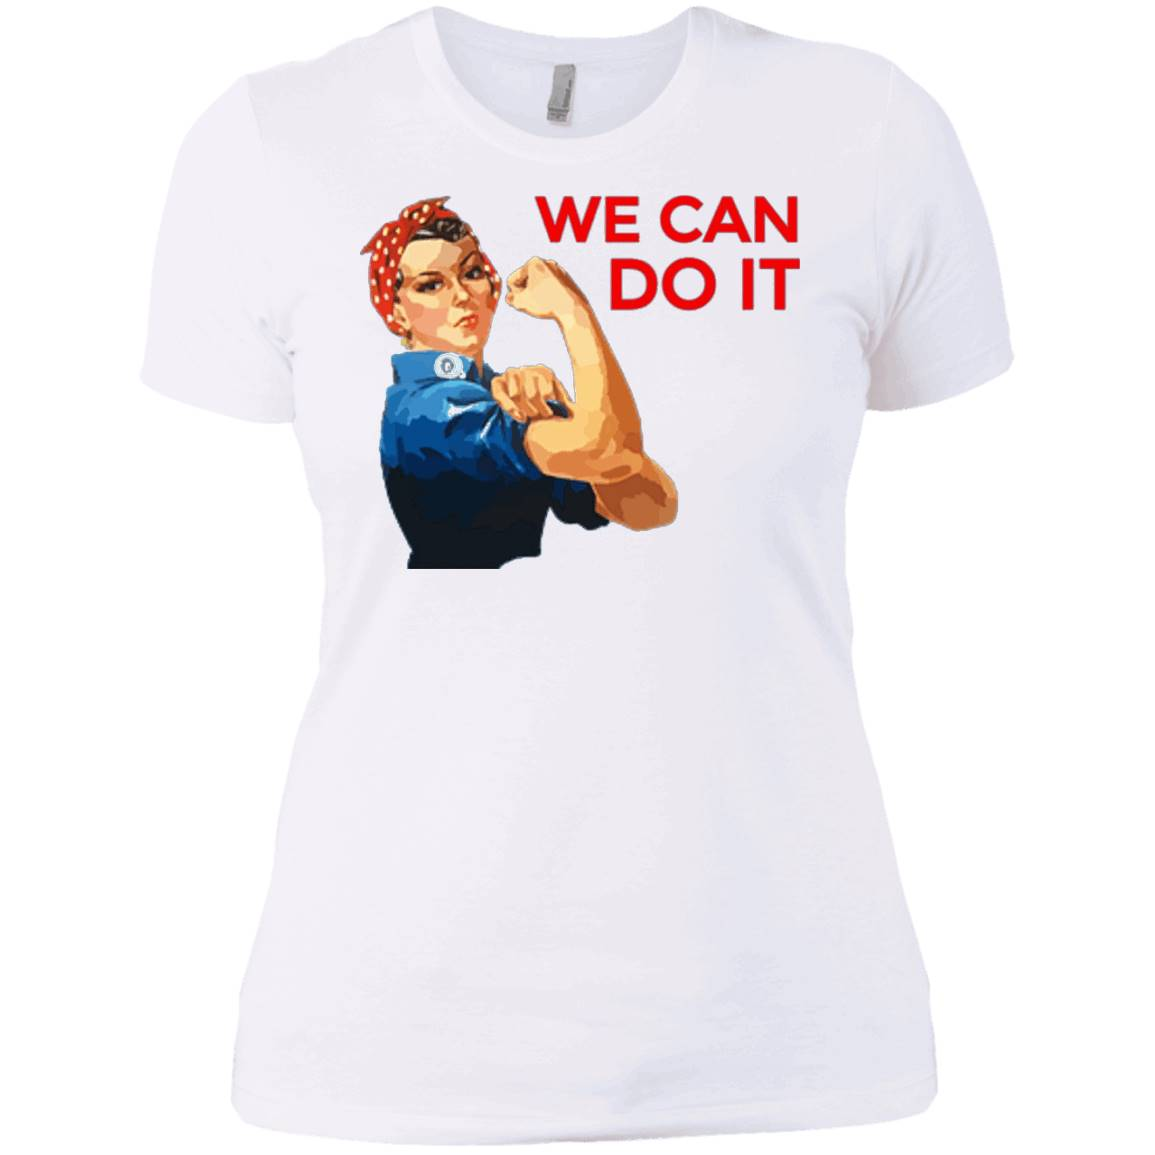 We Can Do It Rosie the Riveter Uplifting T-Shirt in Blue